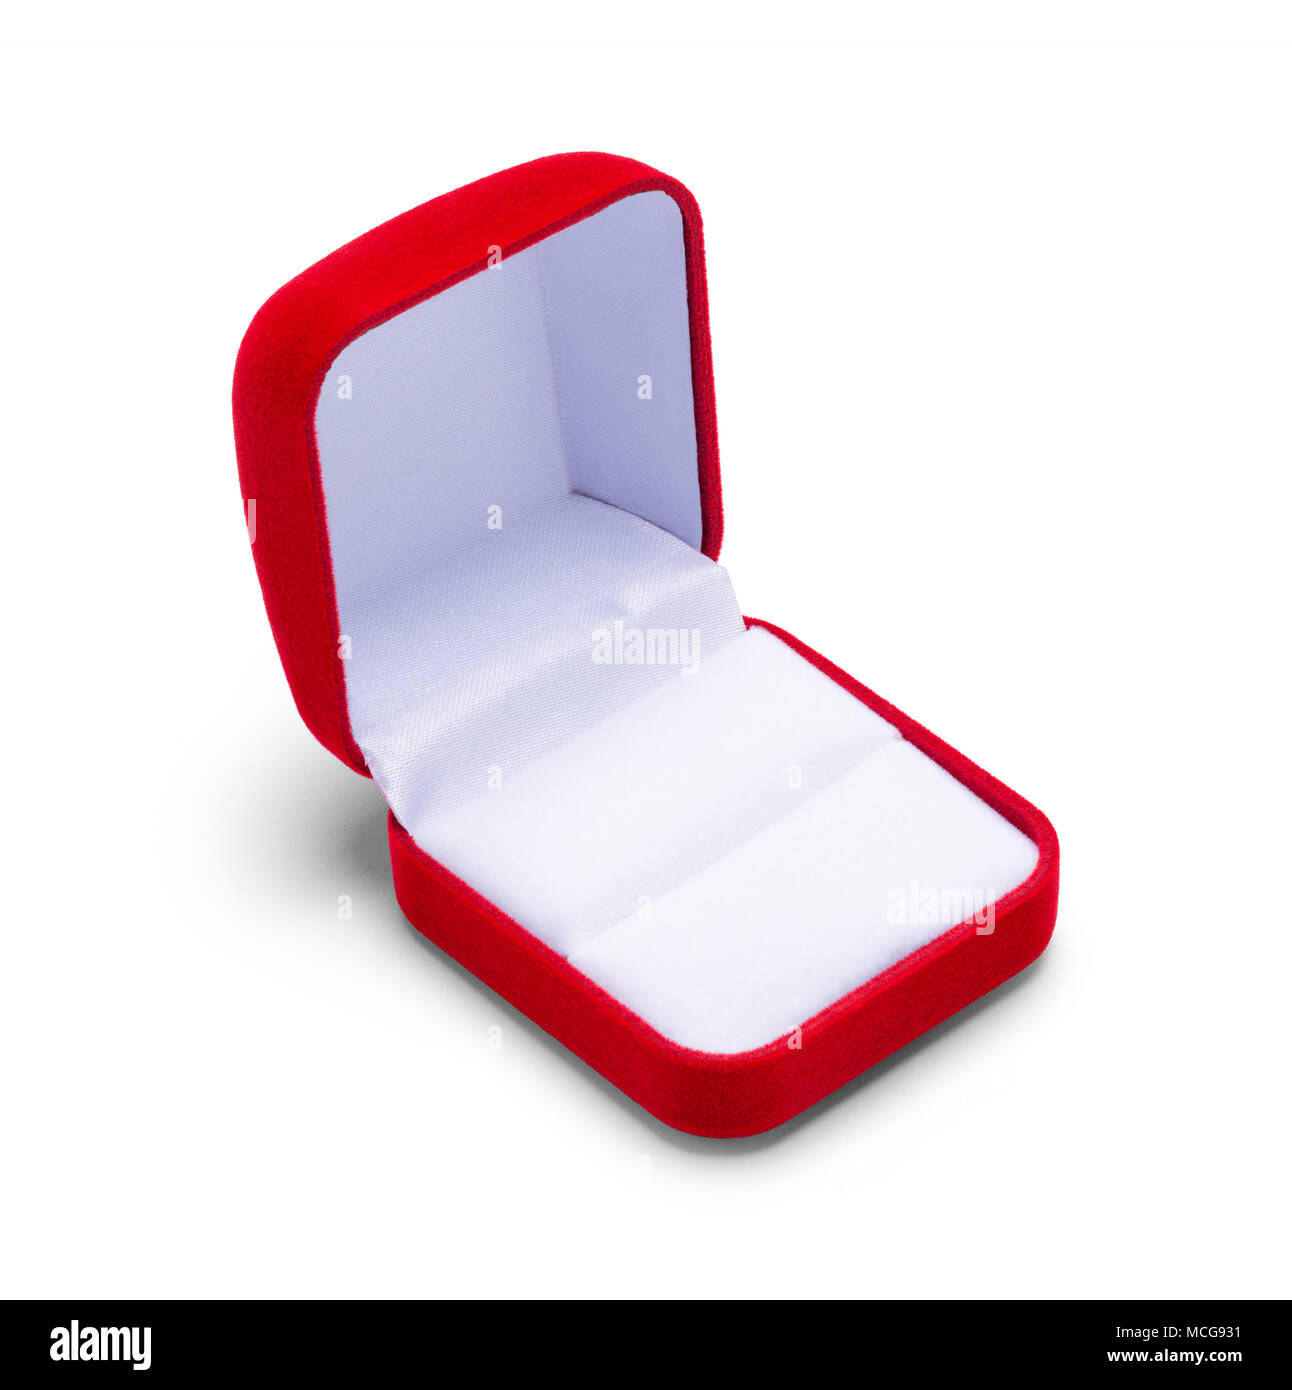 Red Open Jewelry Box Isolated on a White Background. - Stock Image